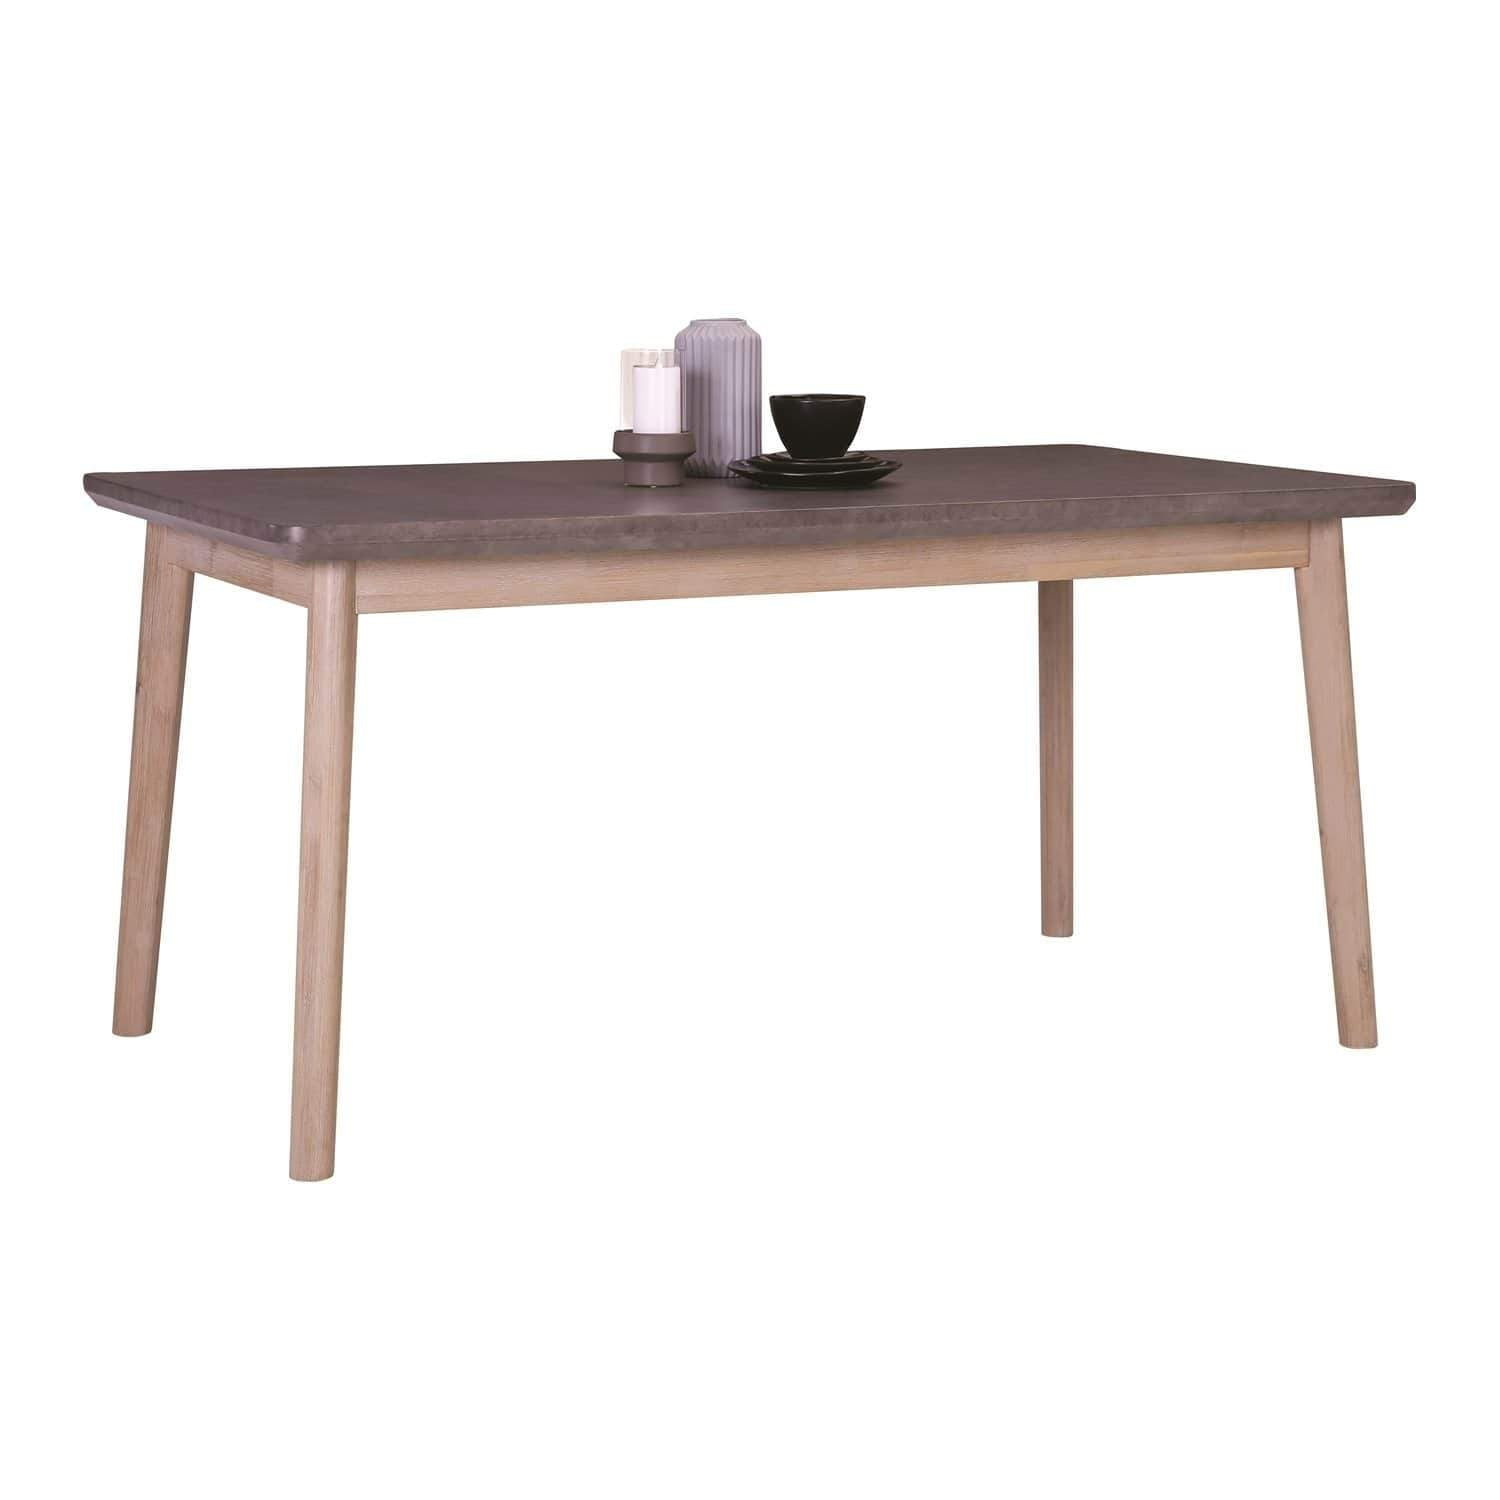 mfdesign88 CORBON 1.8M Dining Table In Havana Sandlast Grey